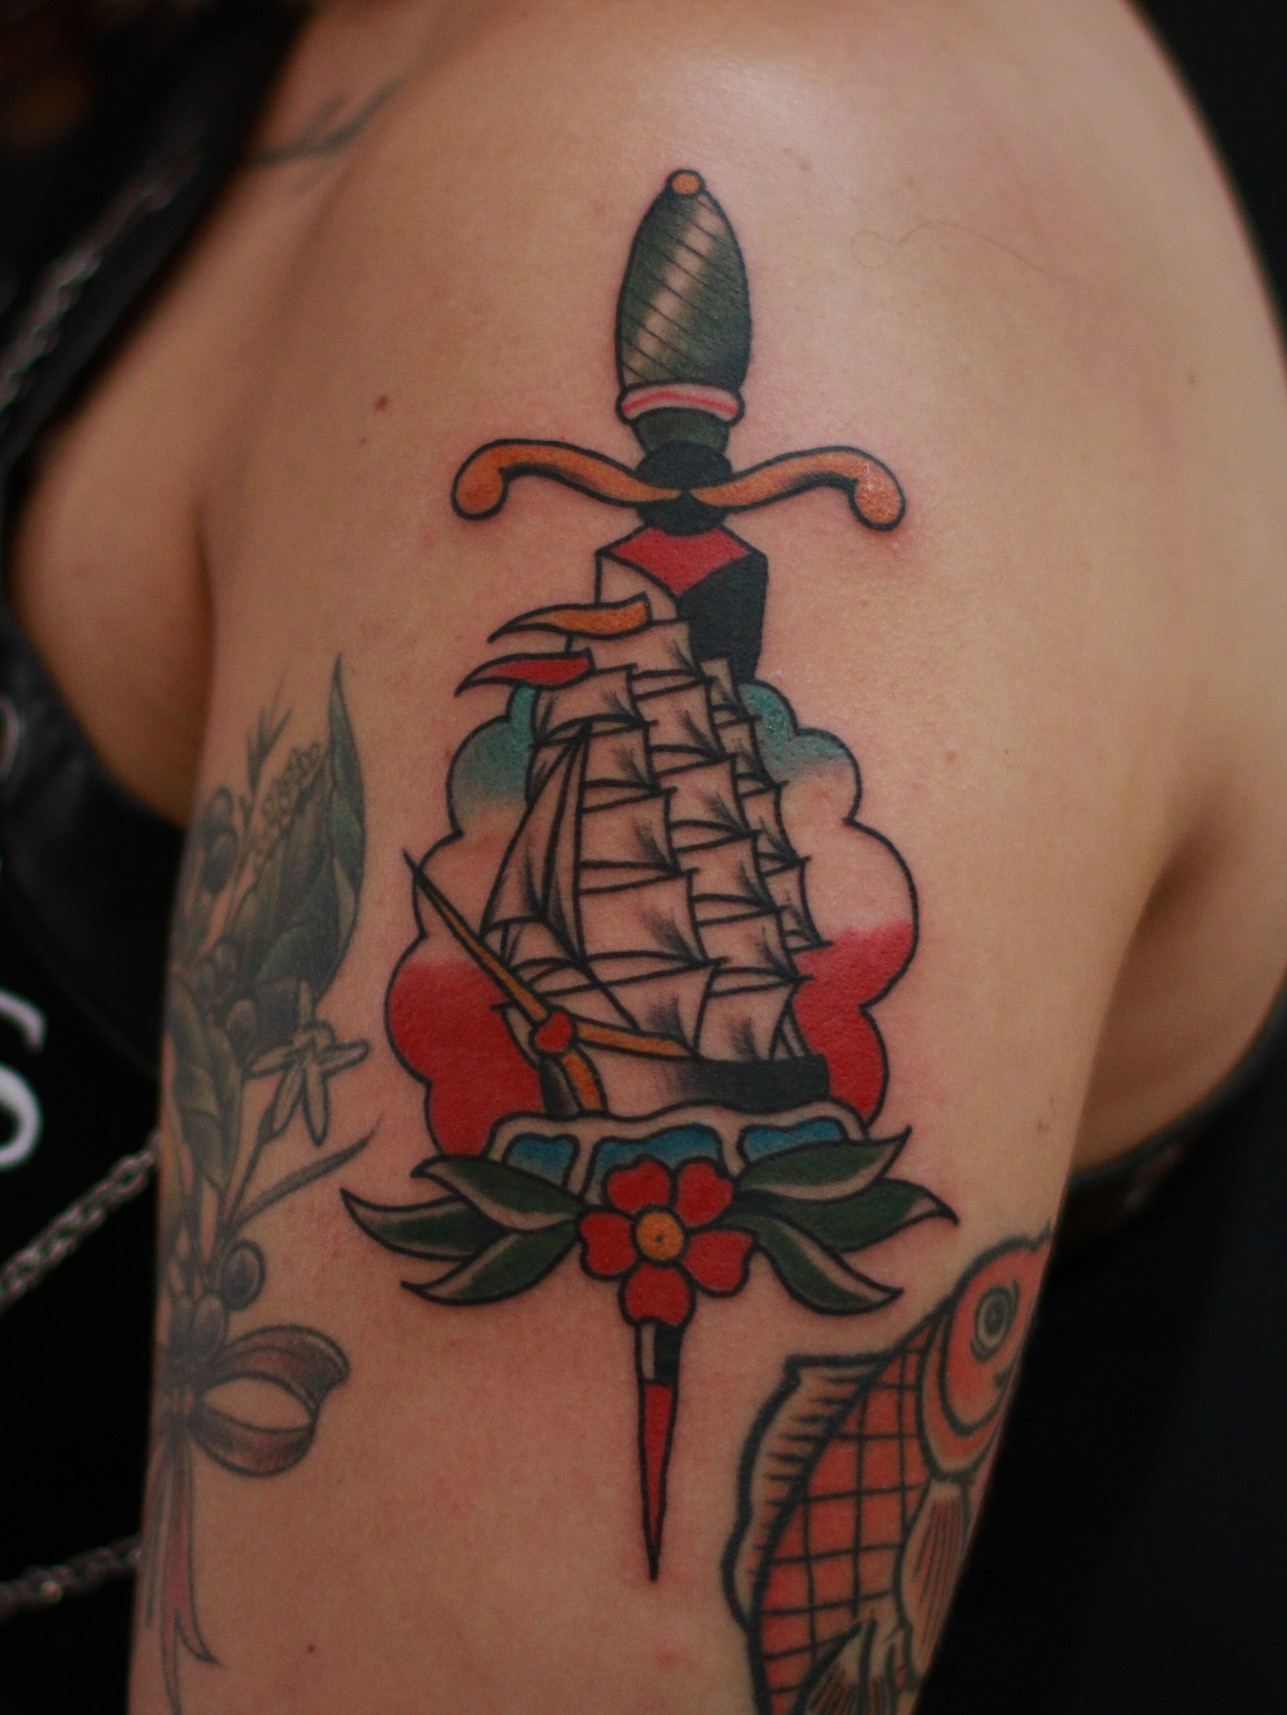 Traditional ship dagger tattoo